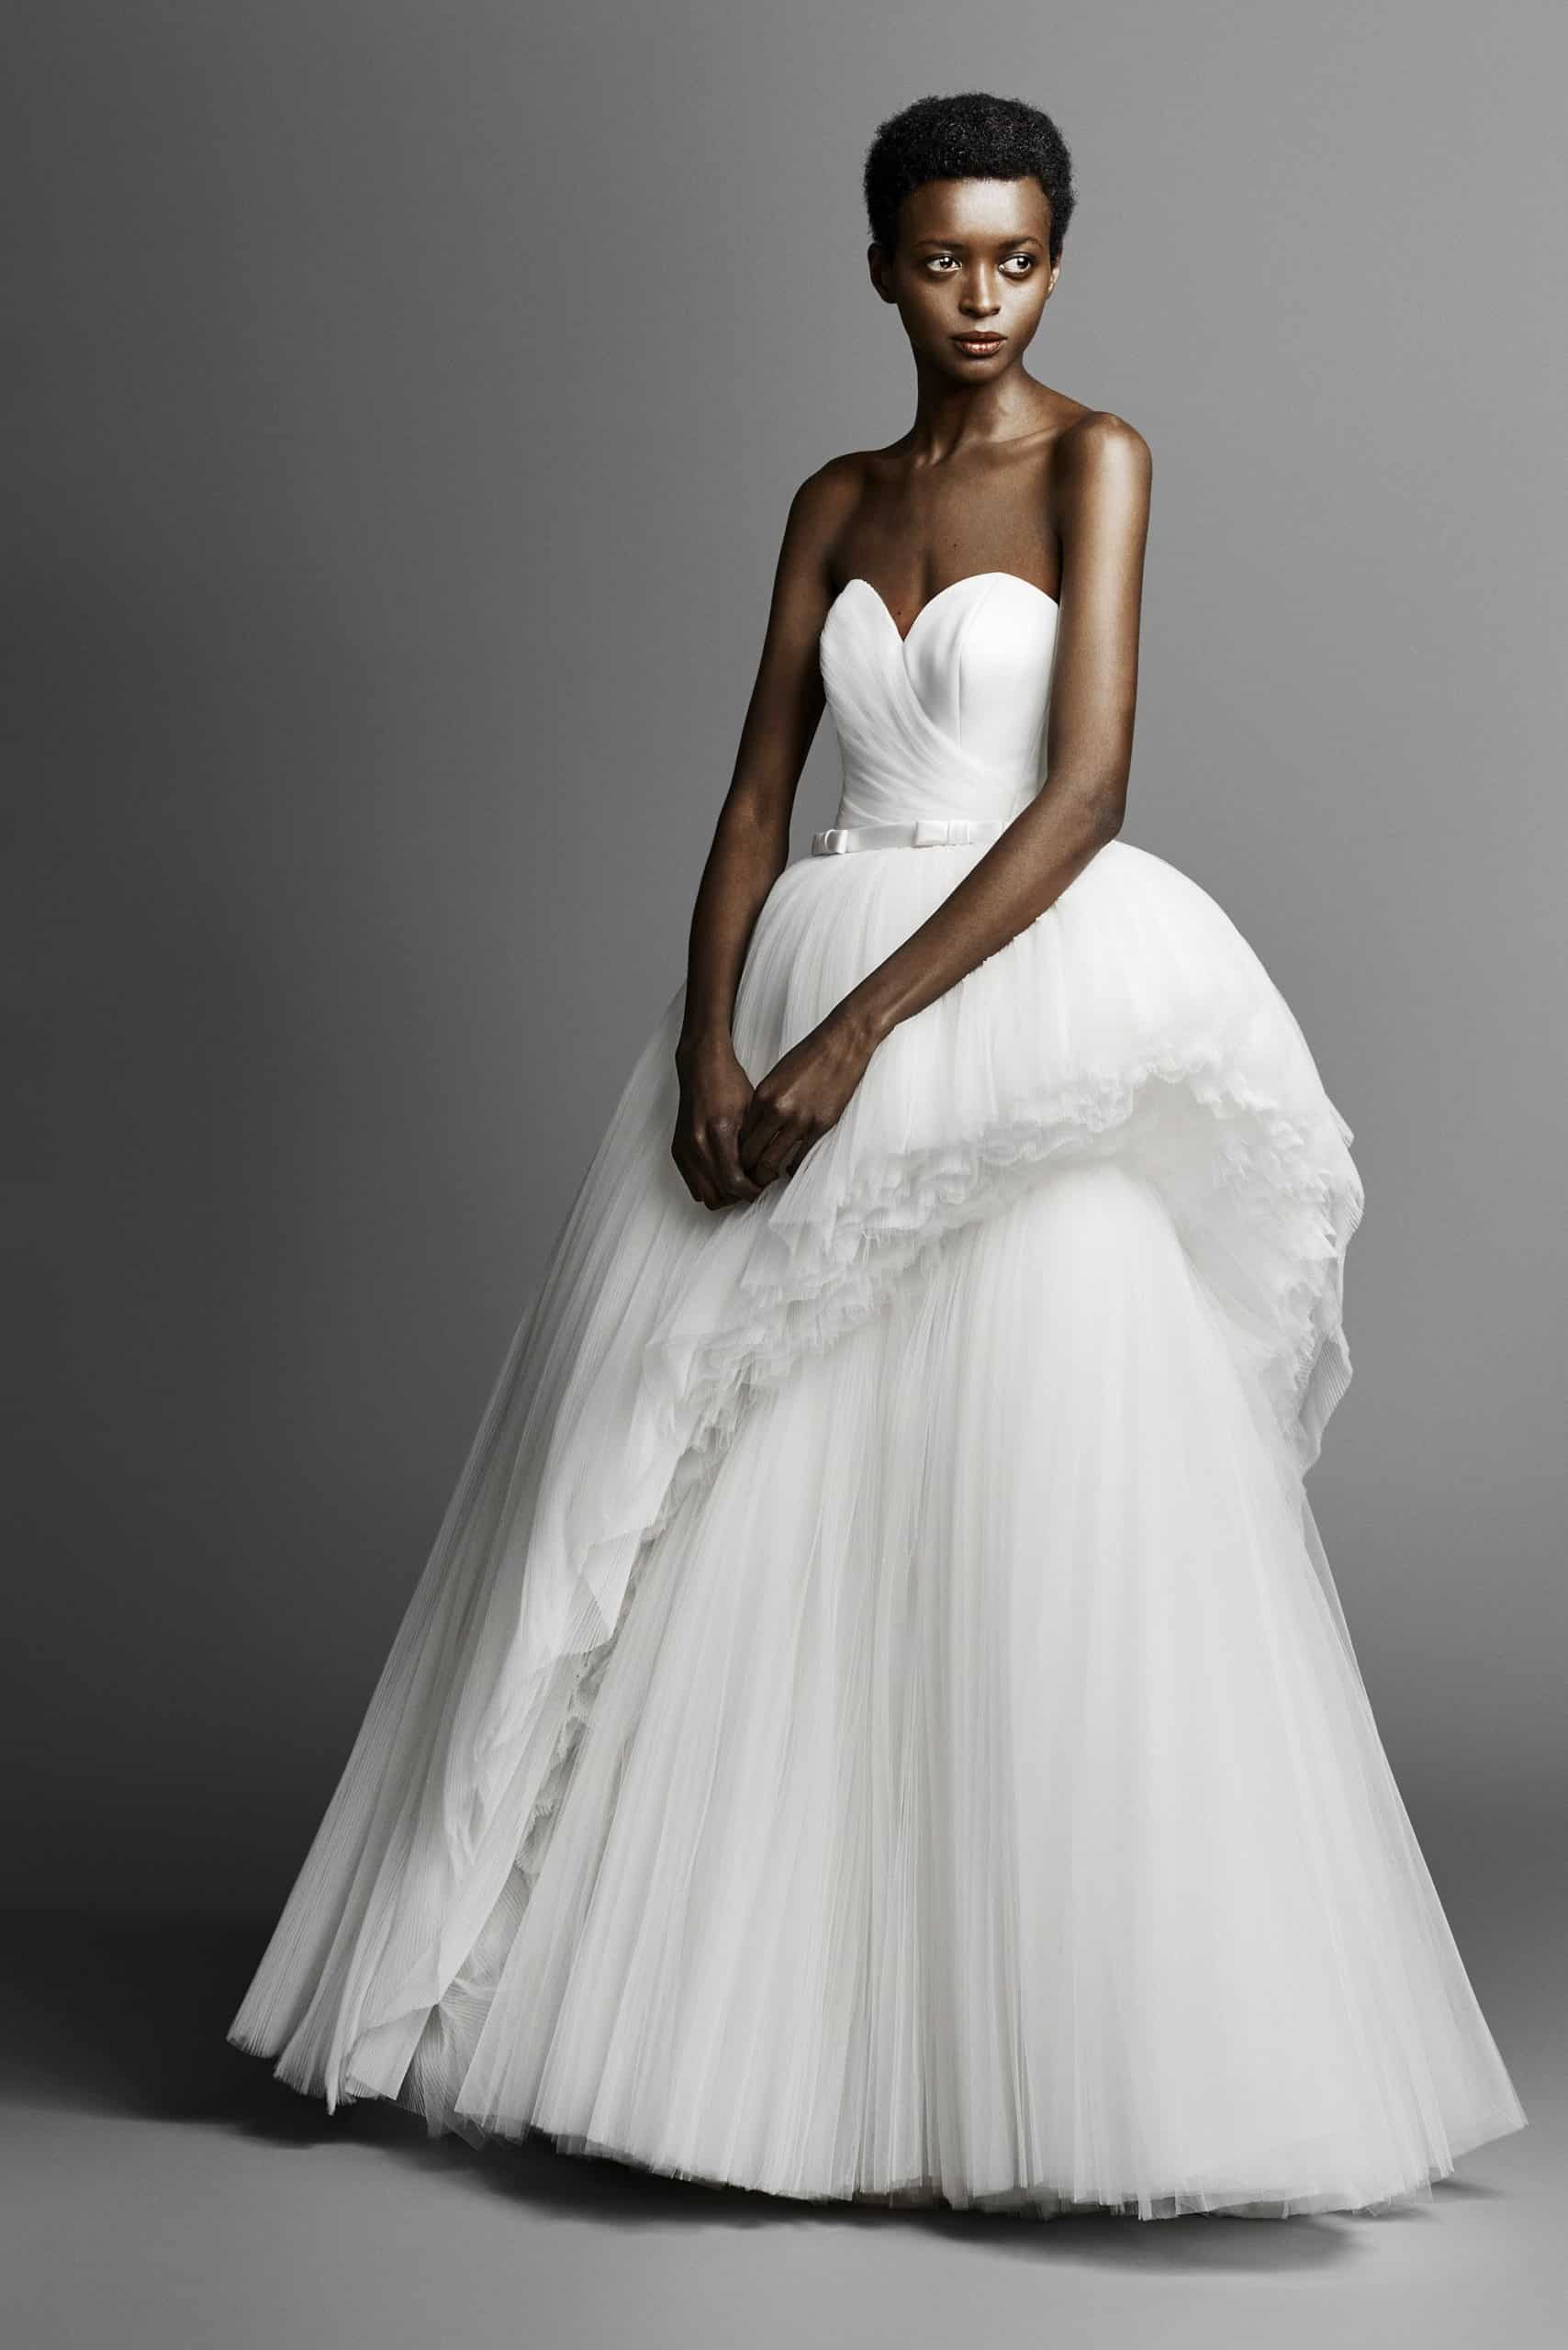 wedding dress with two layers skirt by Viktor and Rolf